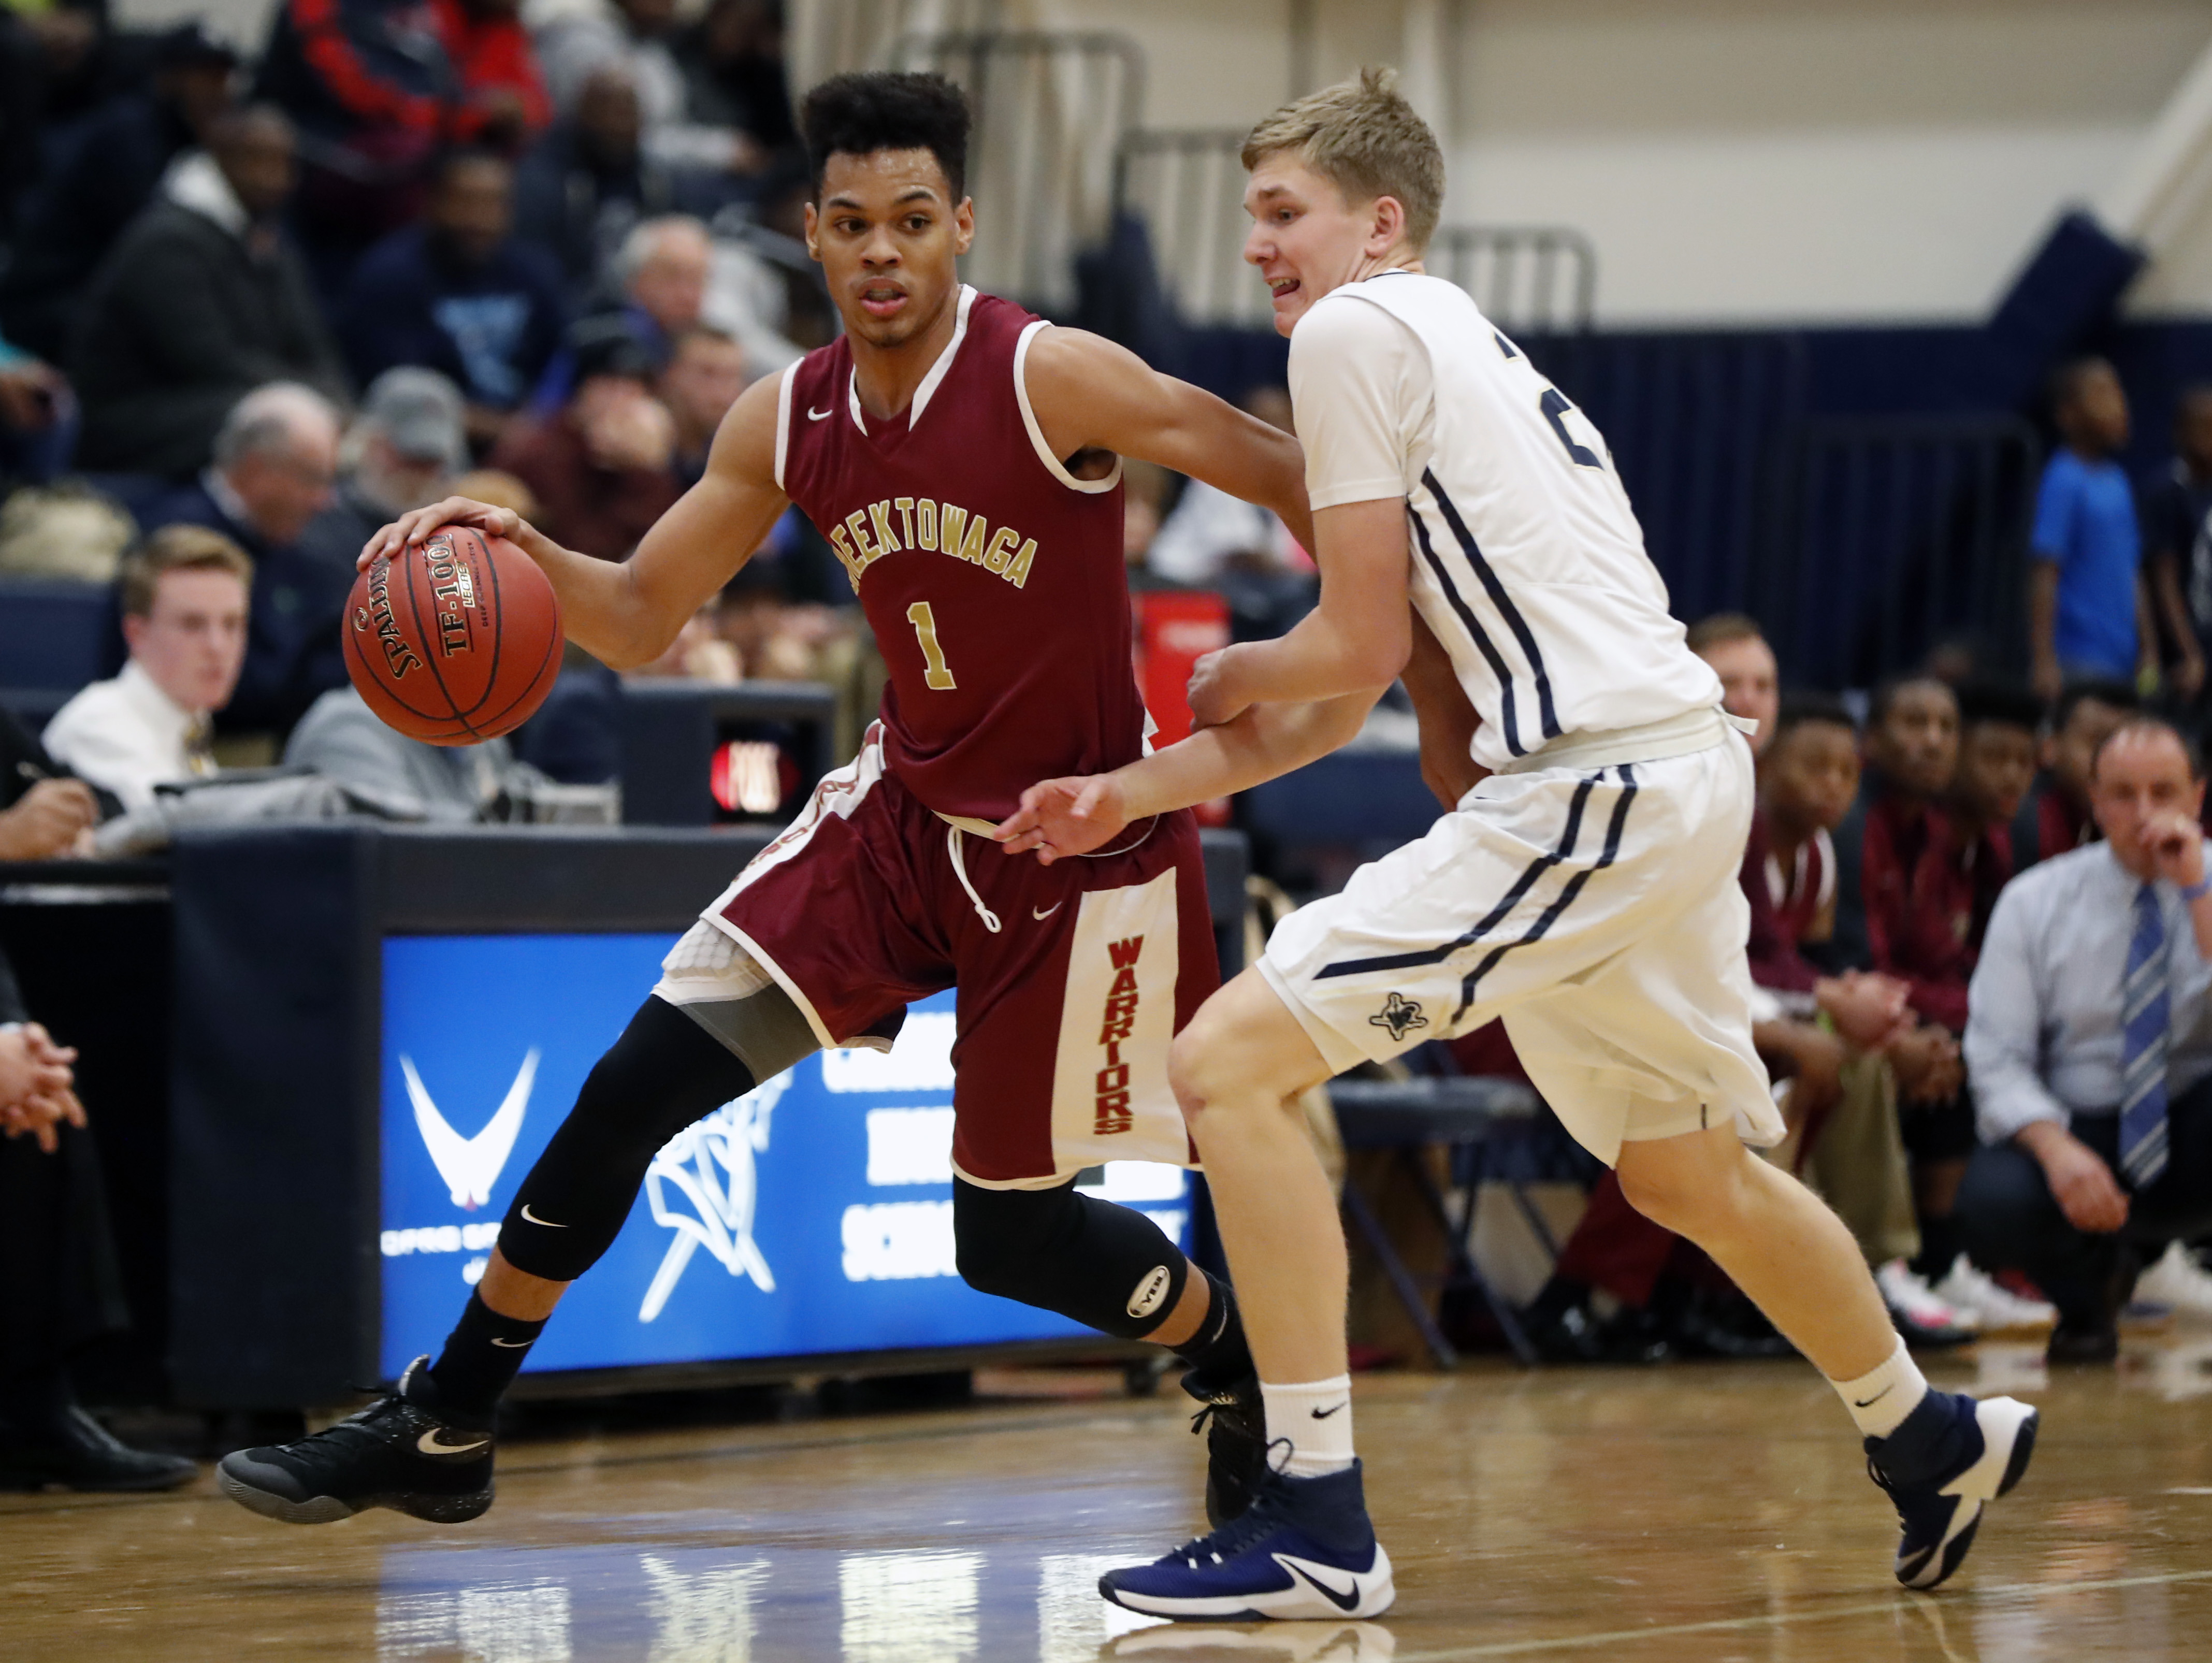 Cheektowaga's Dominick Welch resumes his pursuit of the Western New York career scoring record when the Warriors host Lewiston-Porter on Friday night. (Harry Scull Jr./Buffalo News)